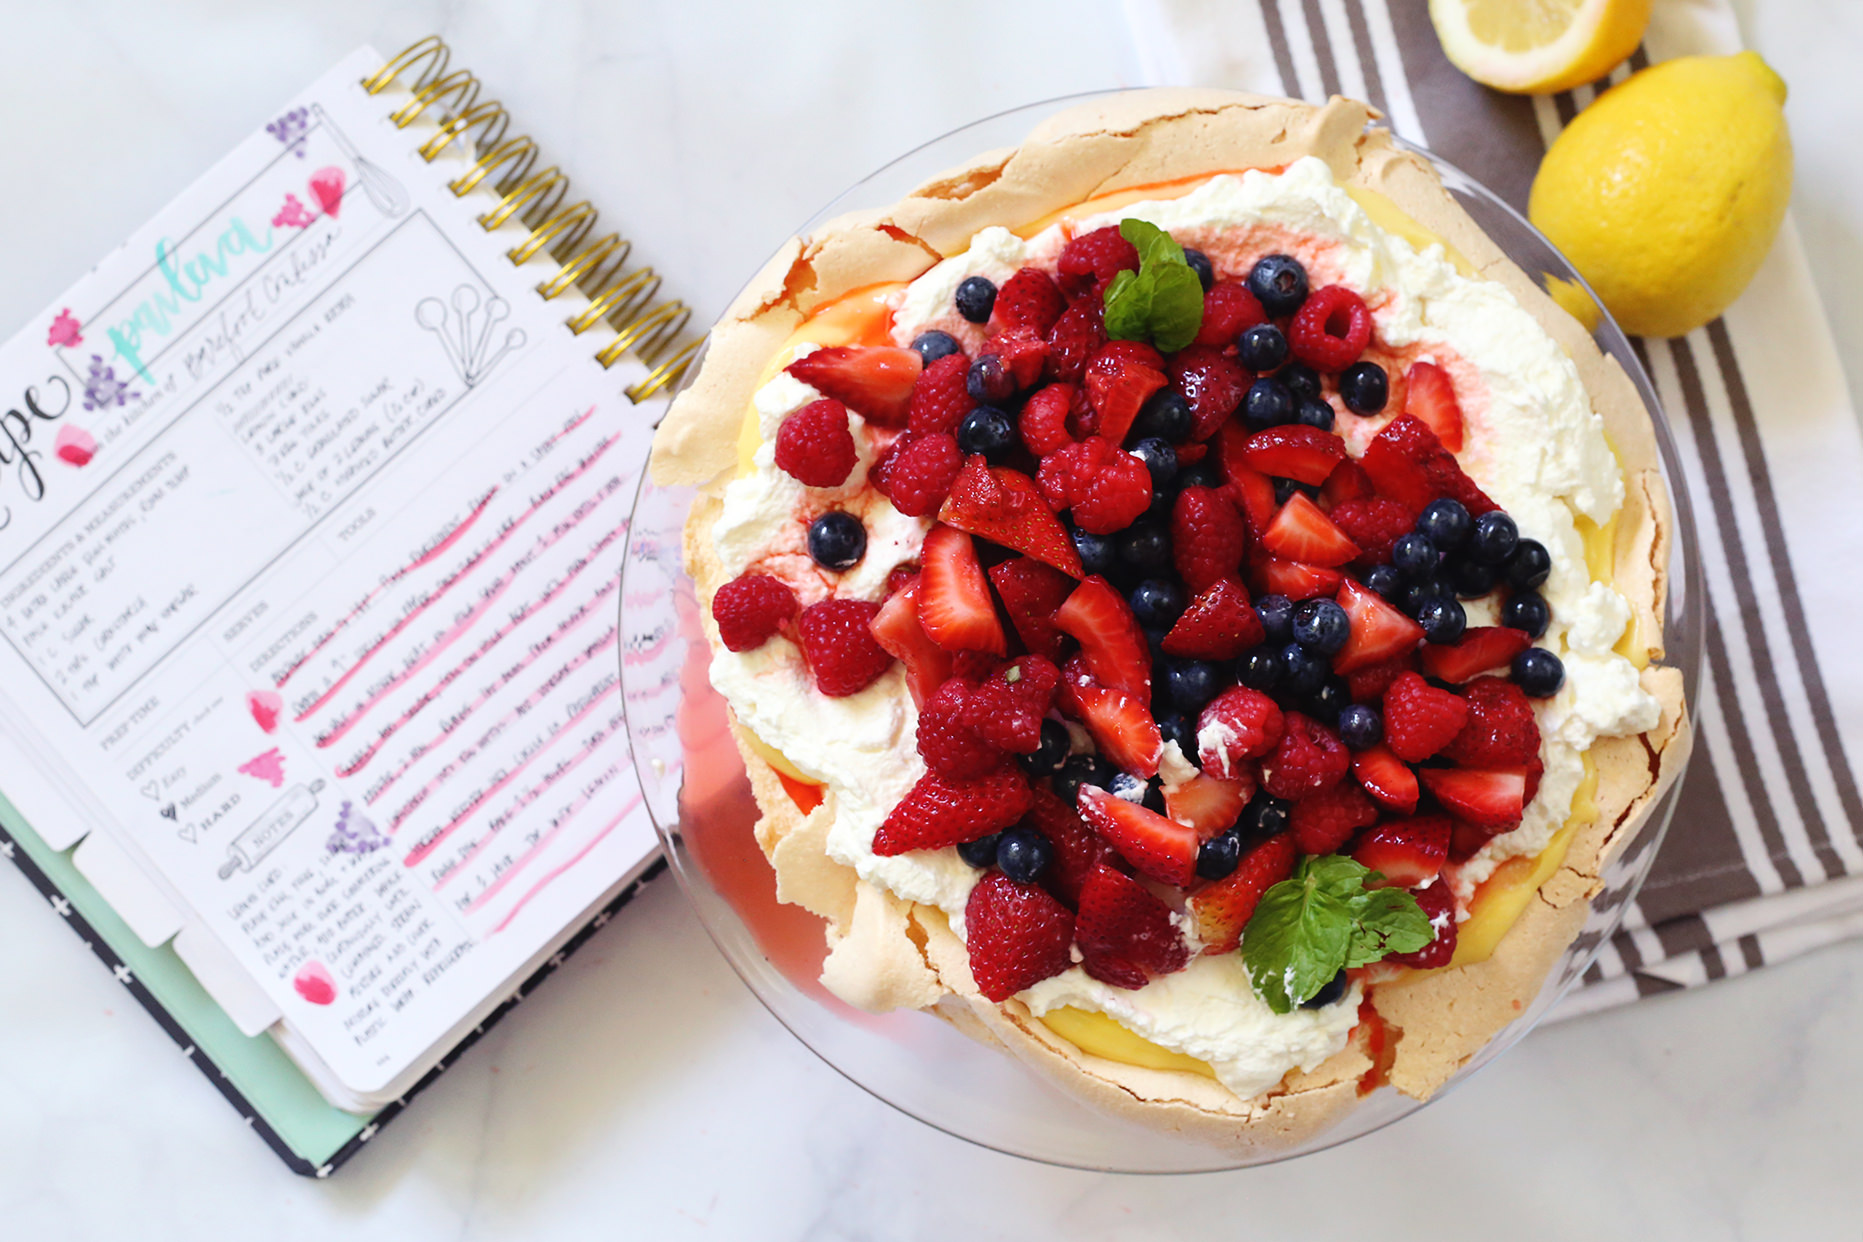 Ina Garten's delicious summer pavlova recipe brought to life via Lily & Val Living and recorded in The Keepsake Kitchen Diary